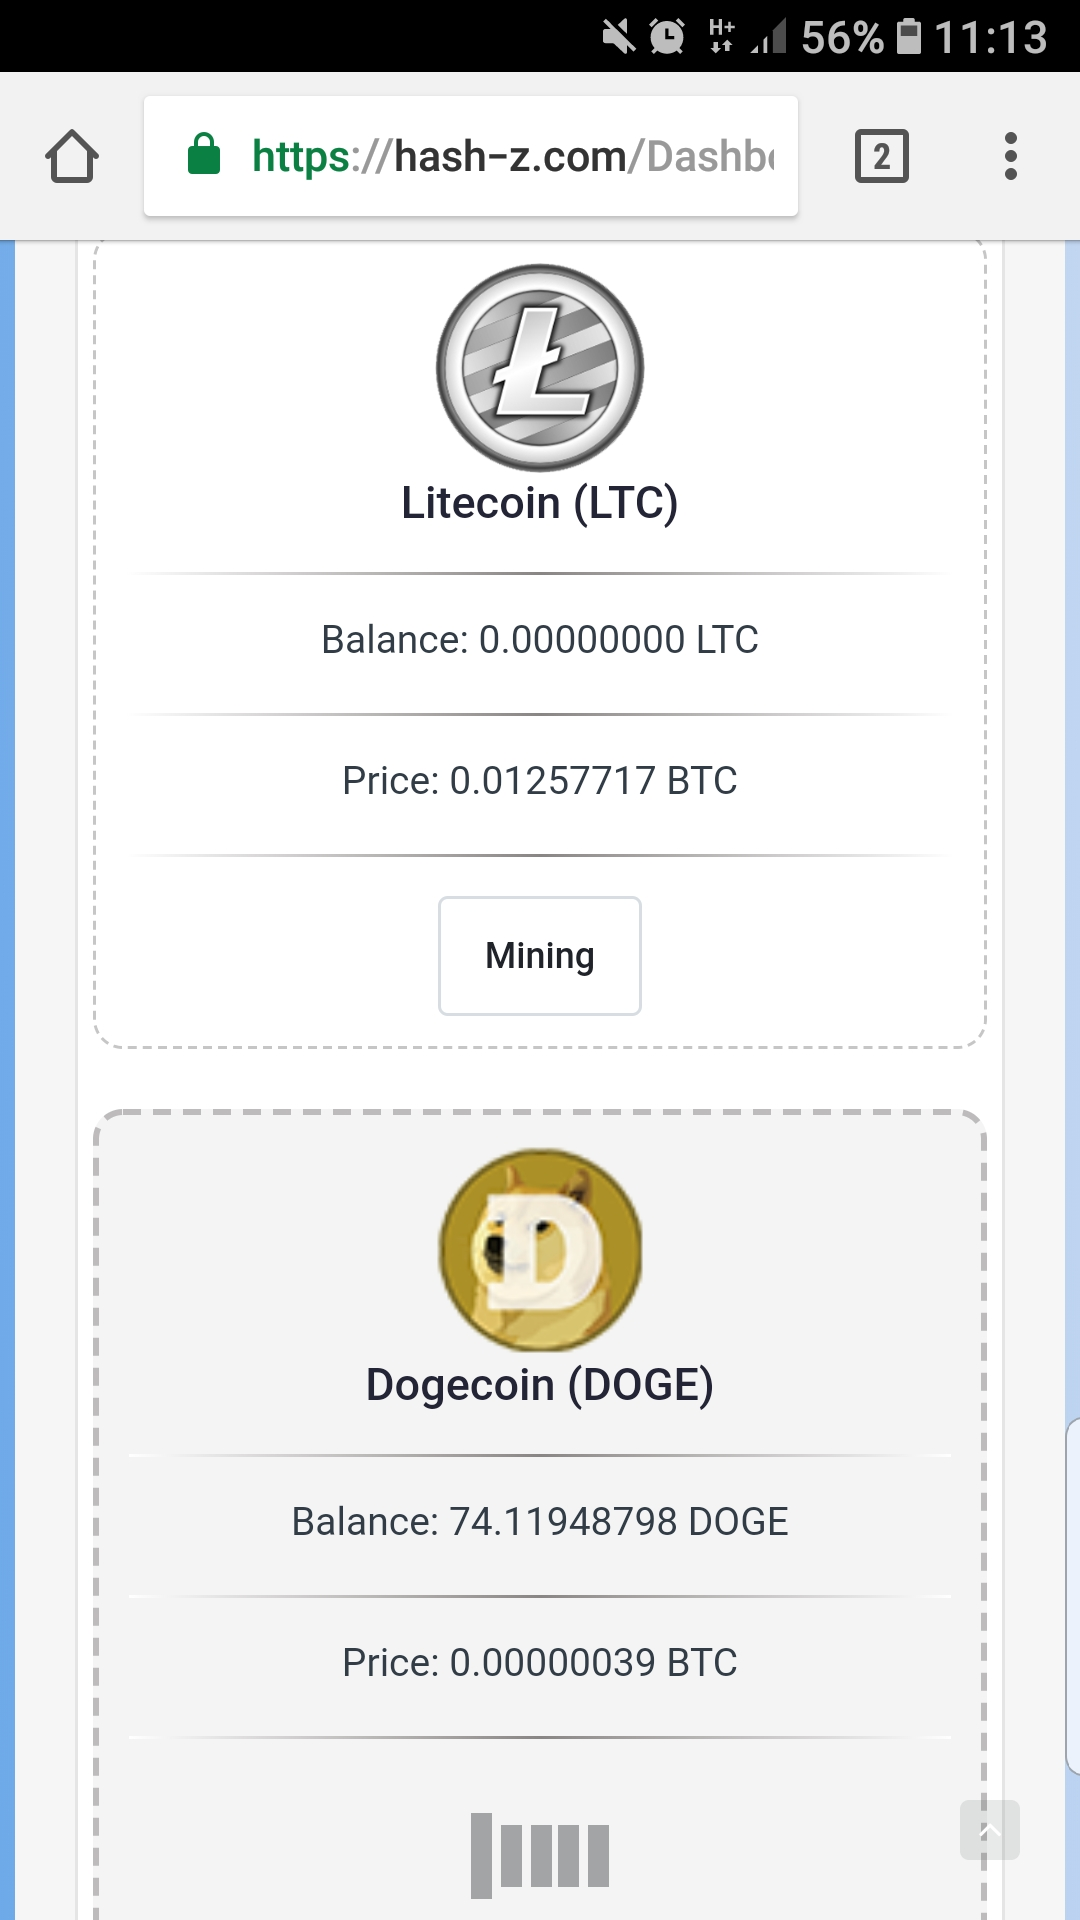 Mining website for dog eth btc ltc bcc